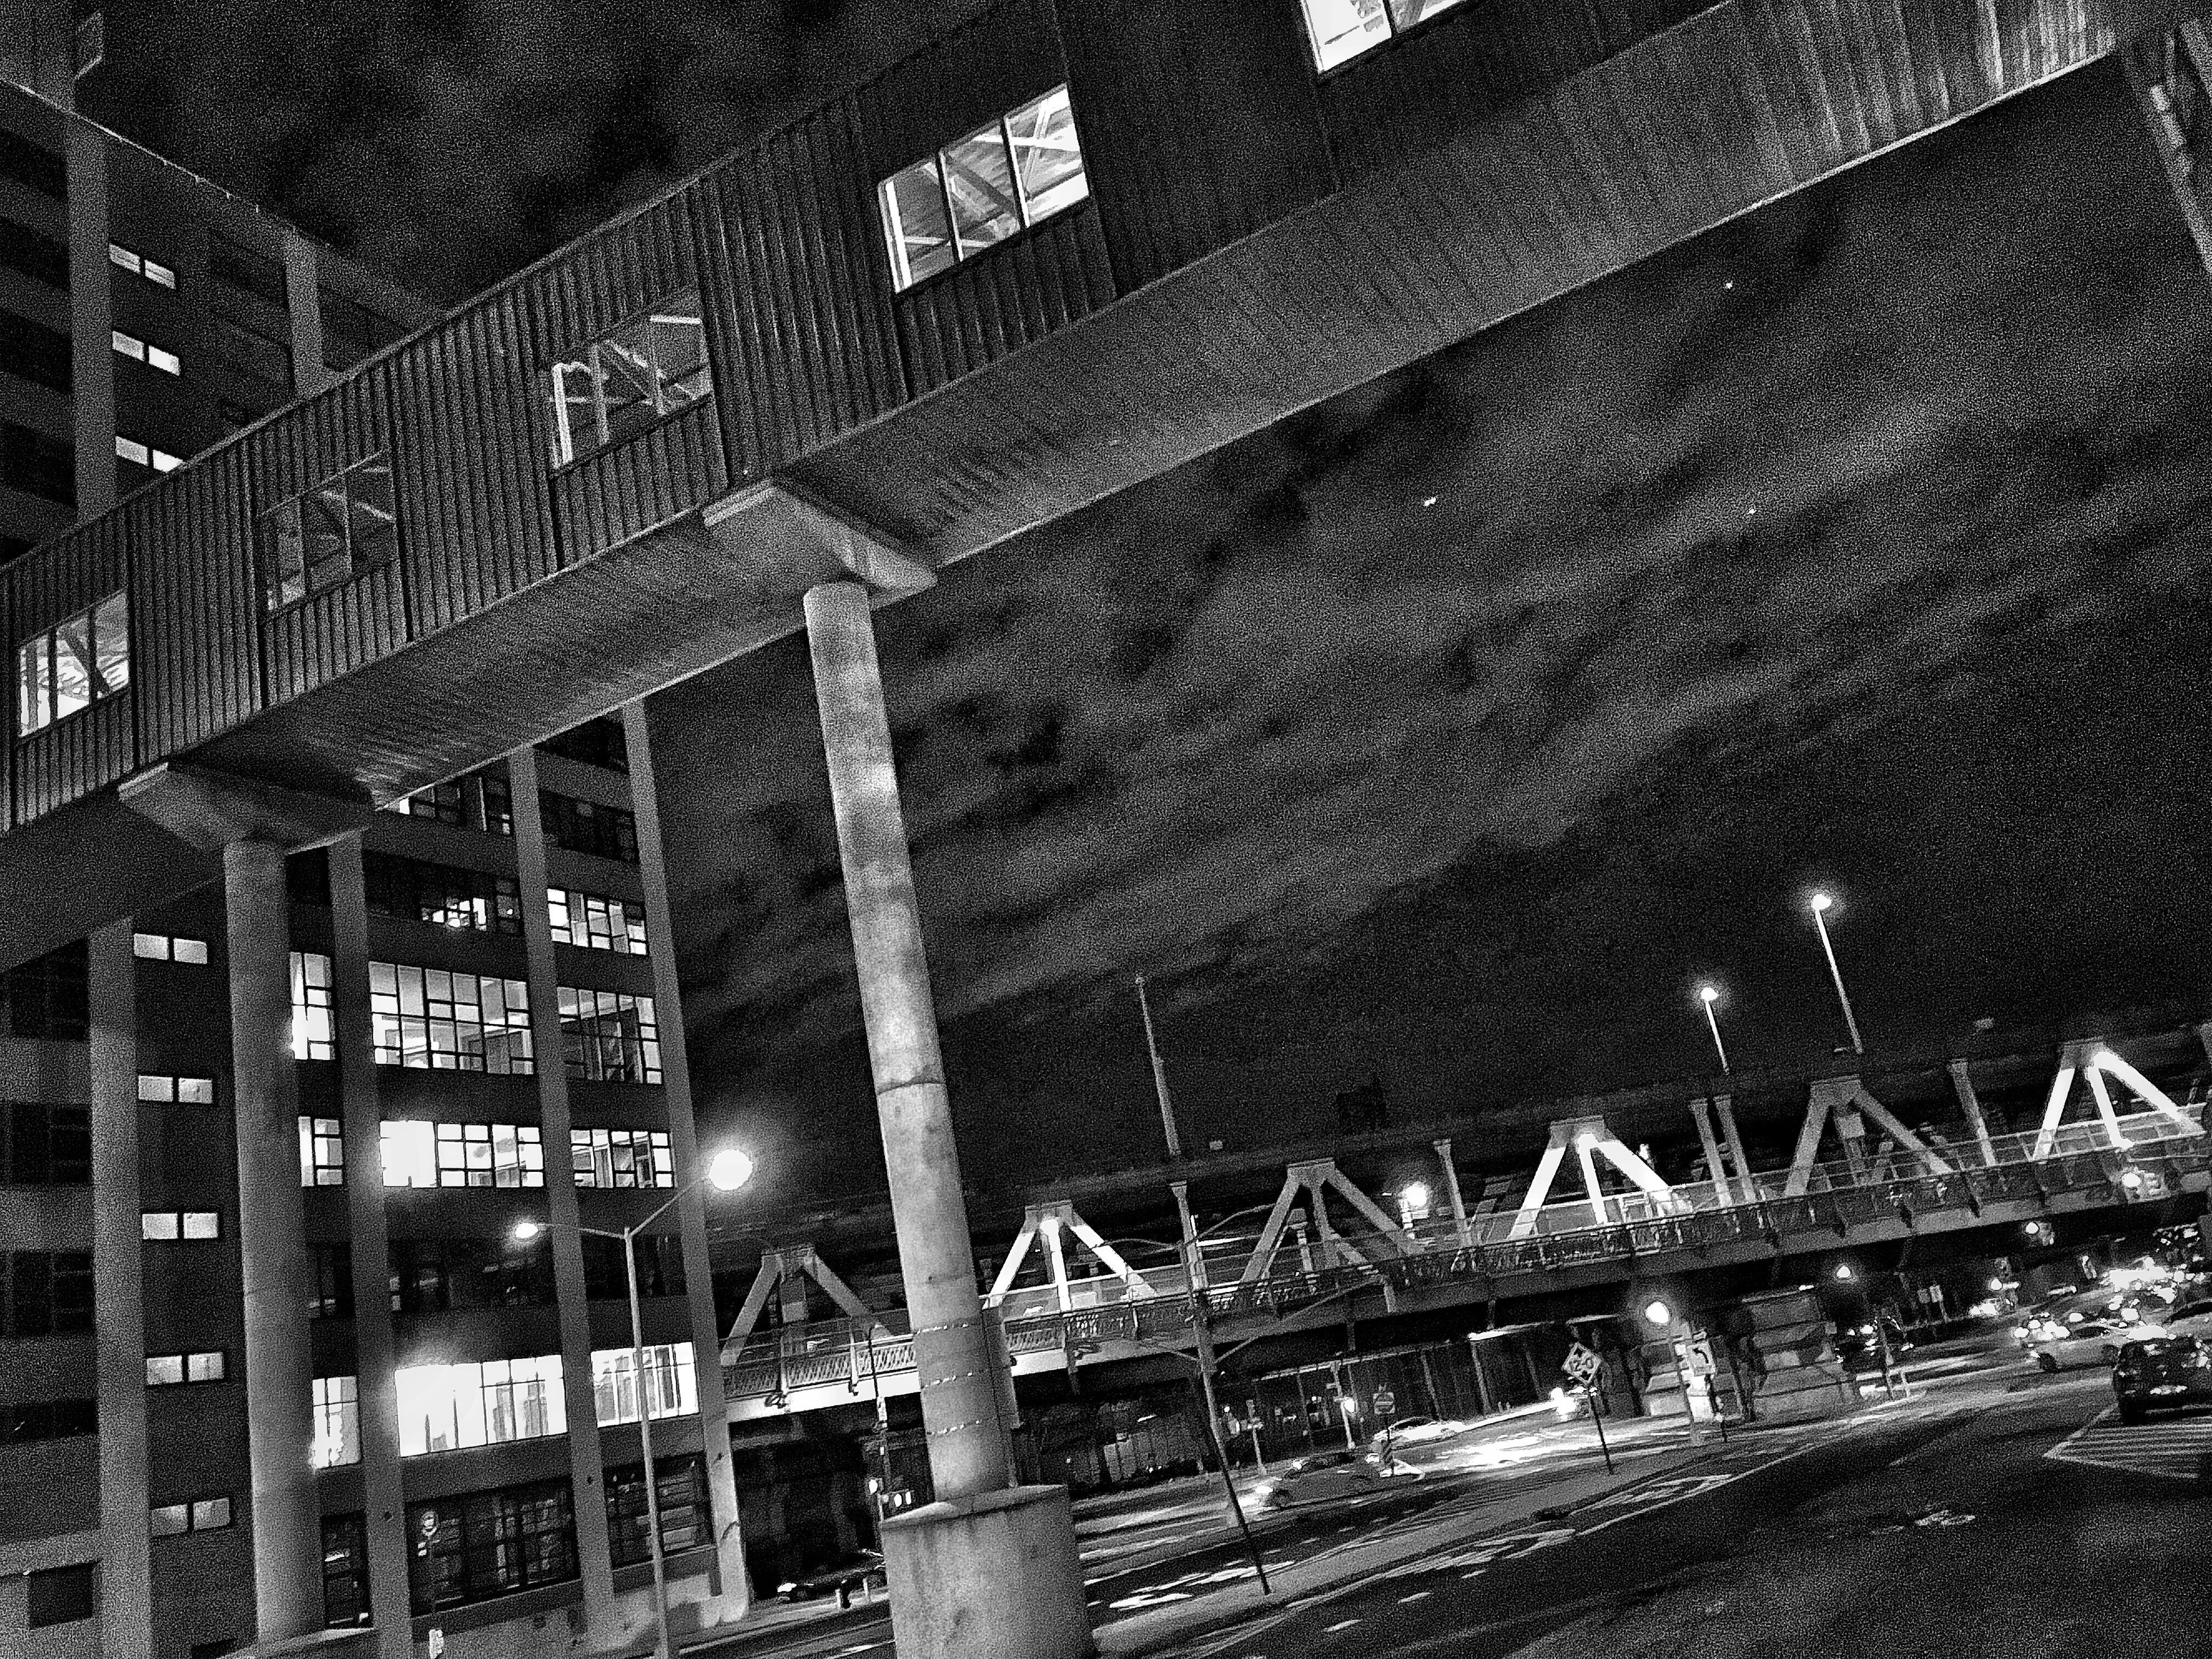 architecture, built structure, building exterior, night, city, bridge - man made structure, transportation, text, railing, western script, building, sky, low angle view, outdoors, connection, no people, street, communication, road, street light